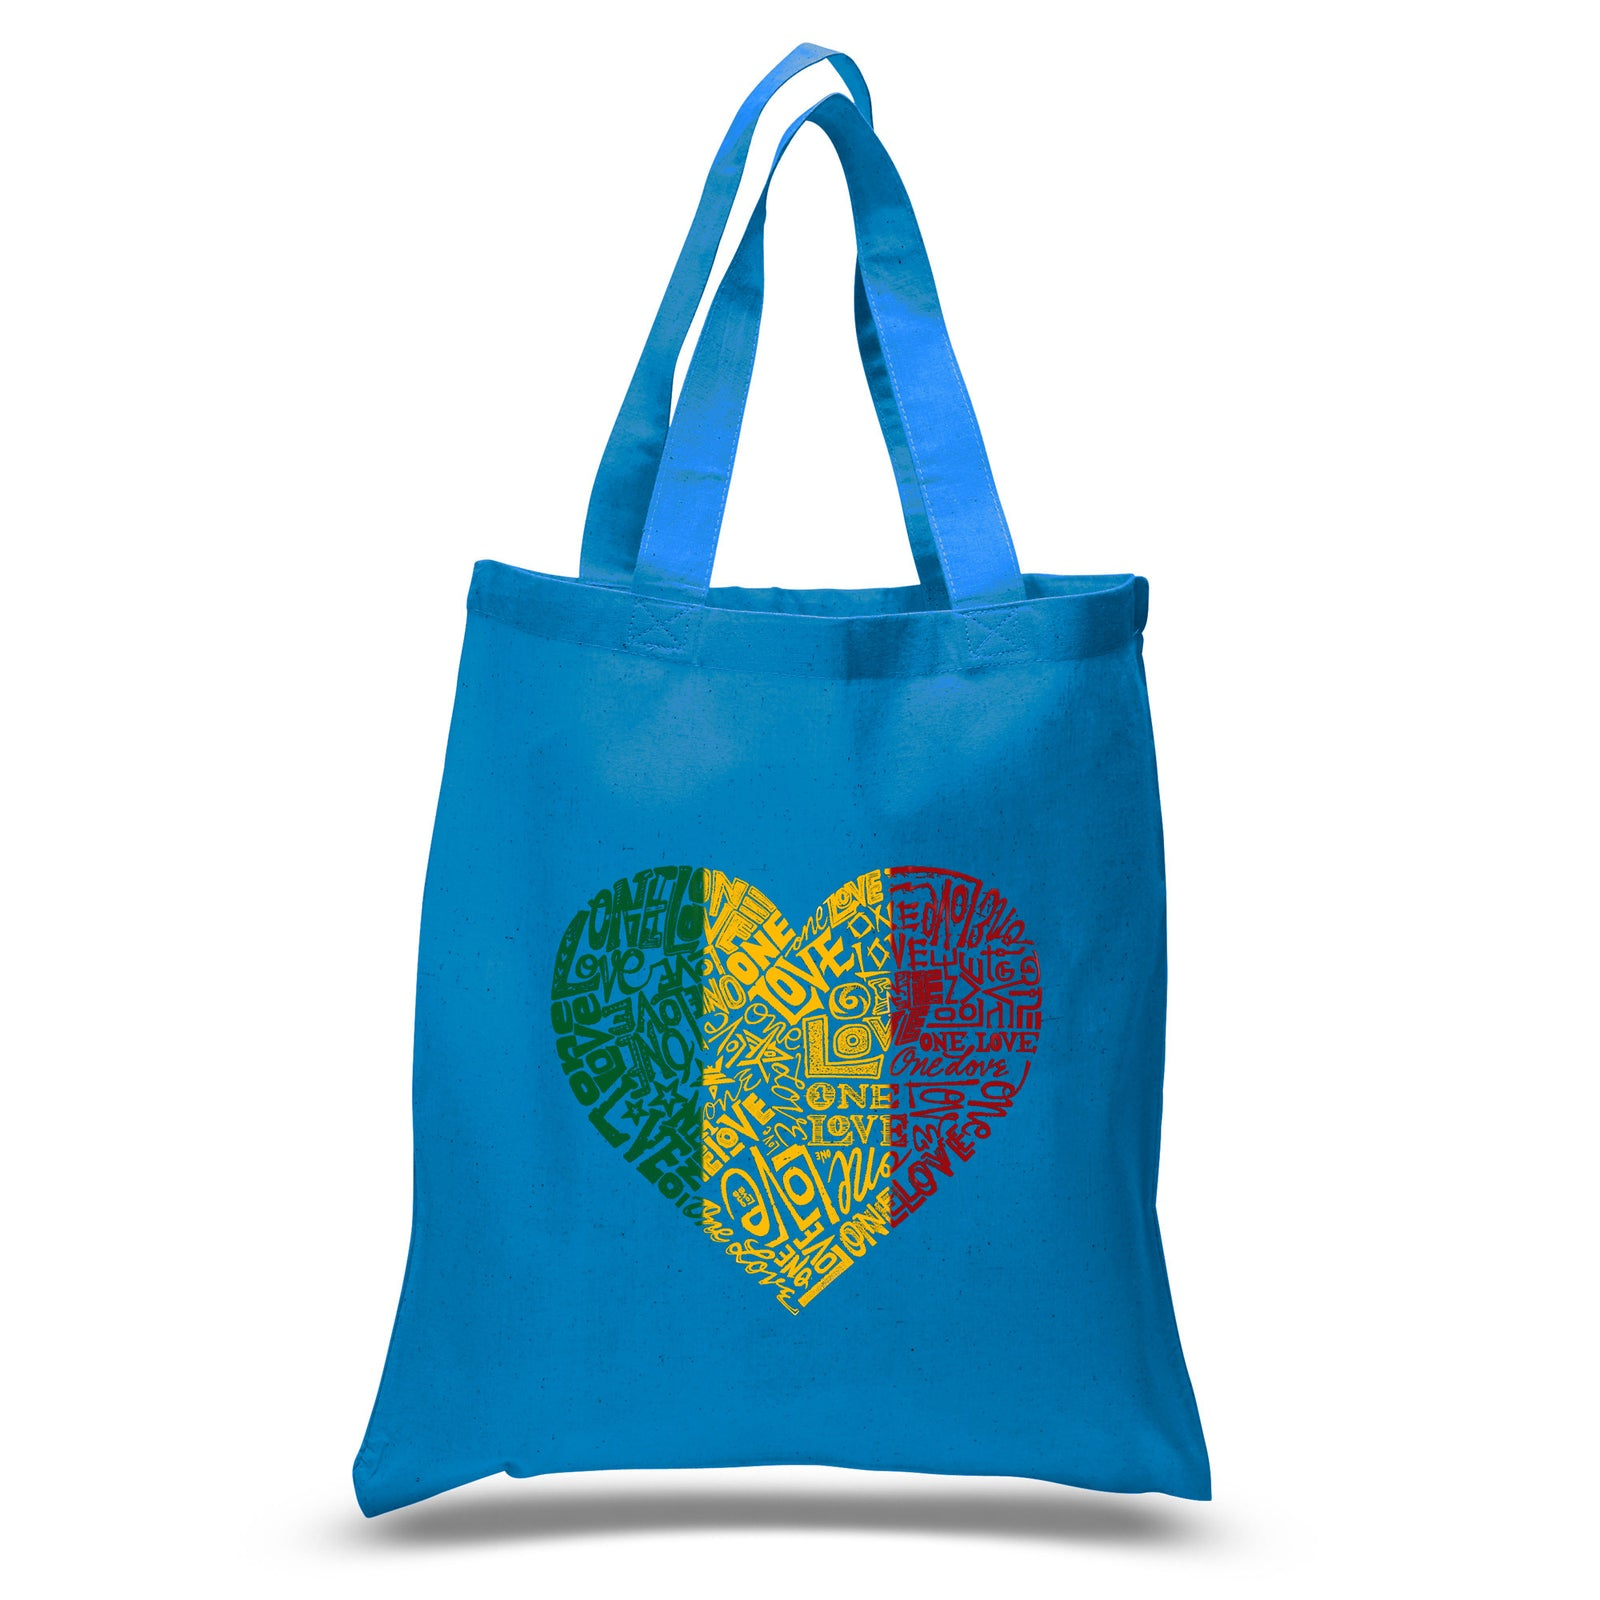 Los Angeles Pop Art Small Tote Bag - One Love Heart